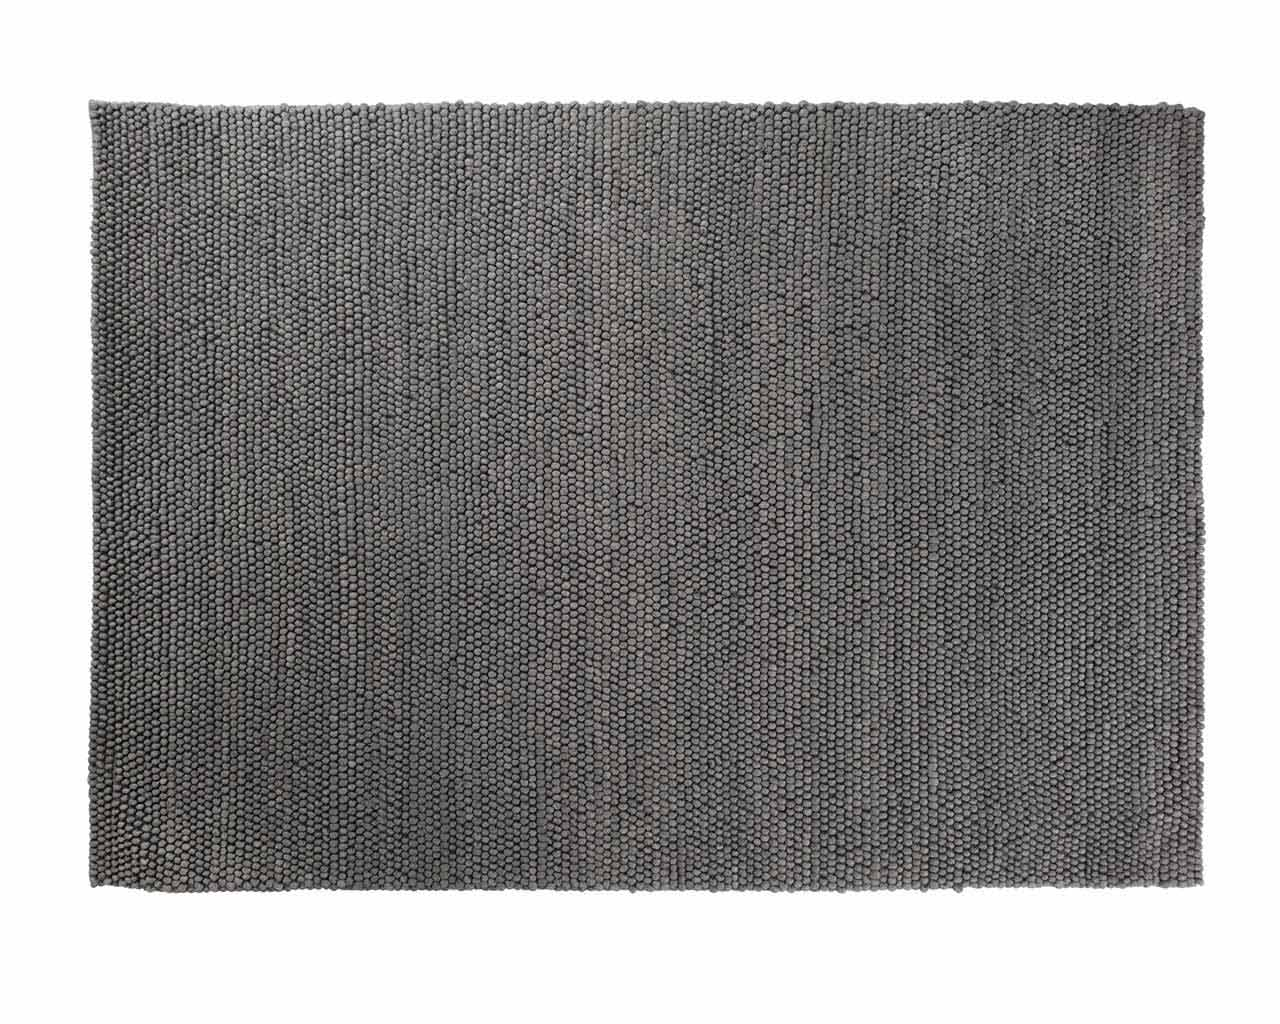 woollen loop rugs grey india